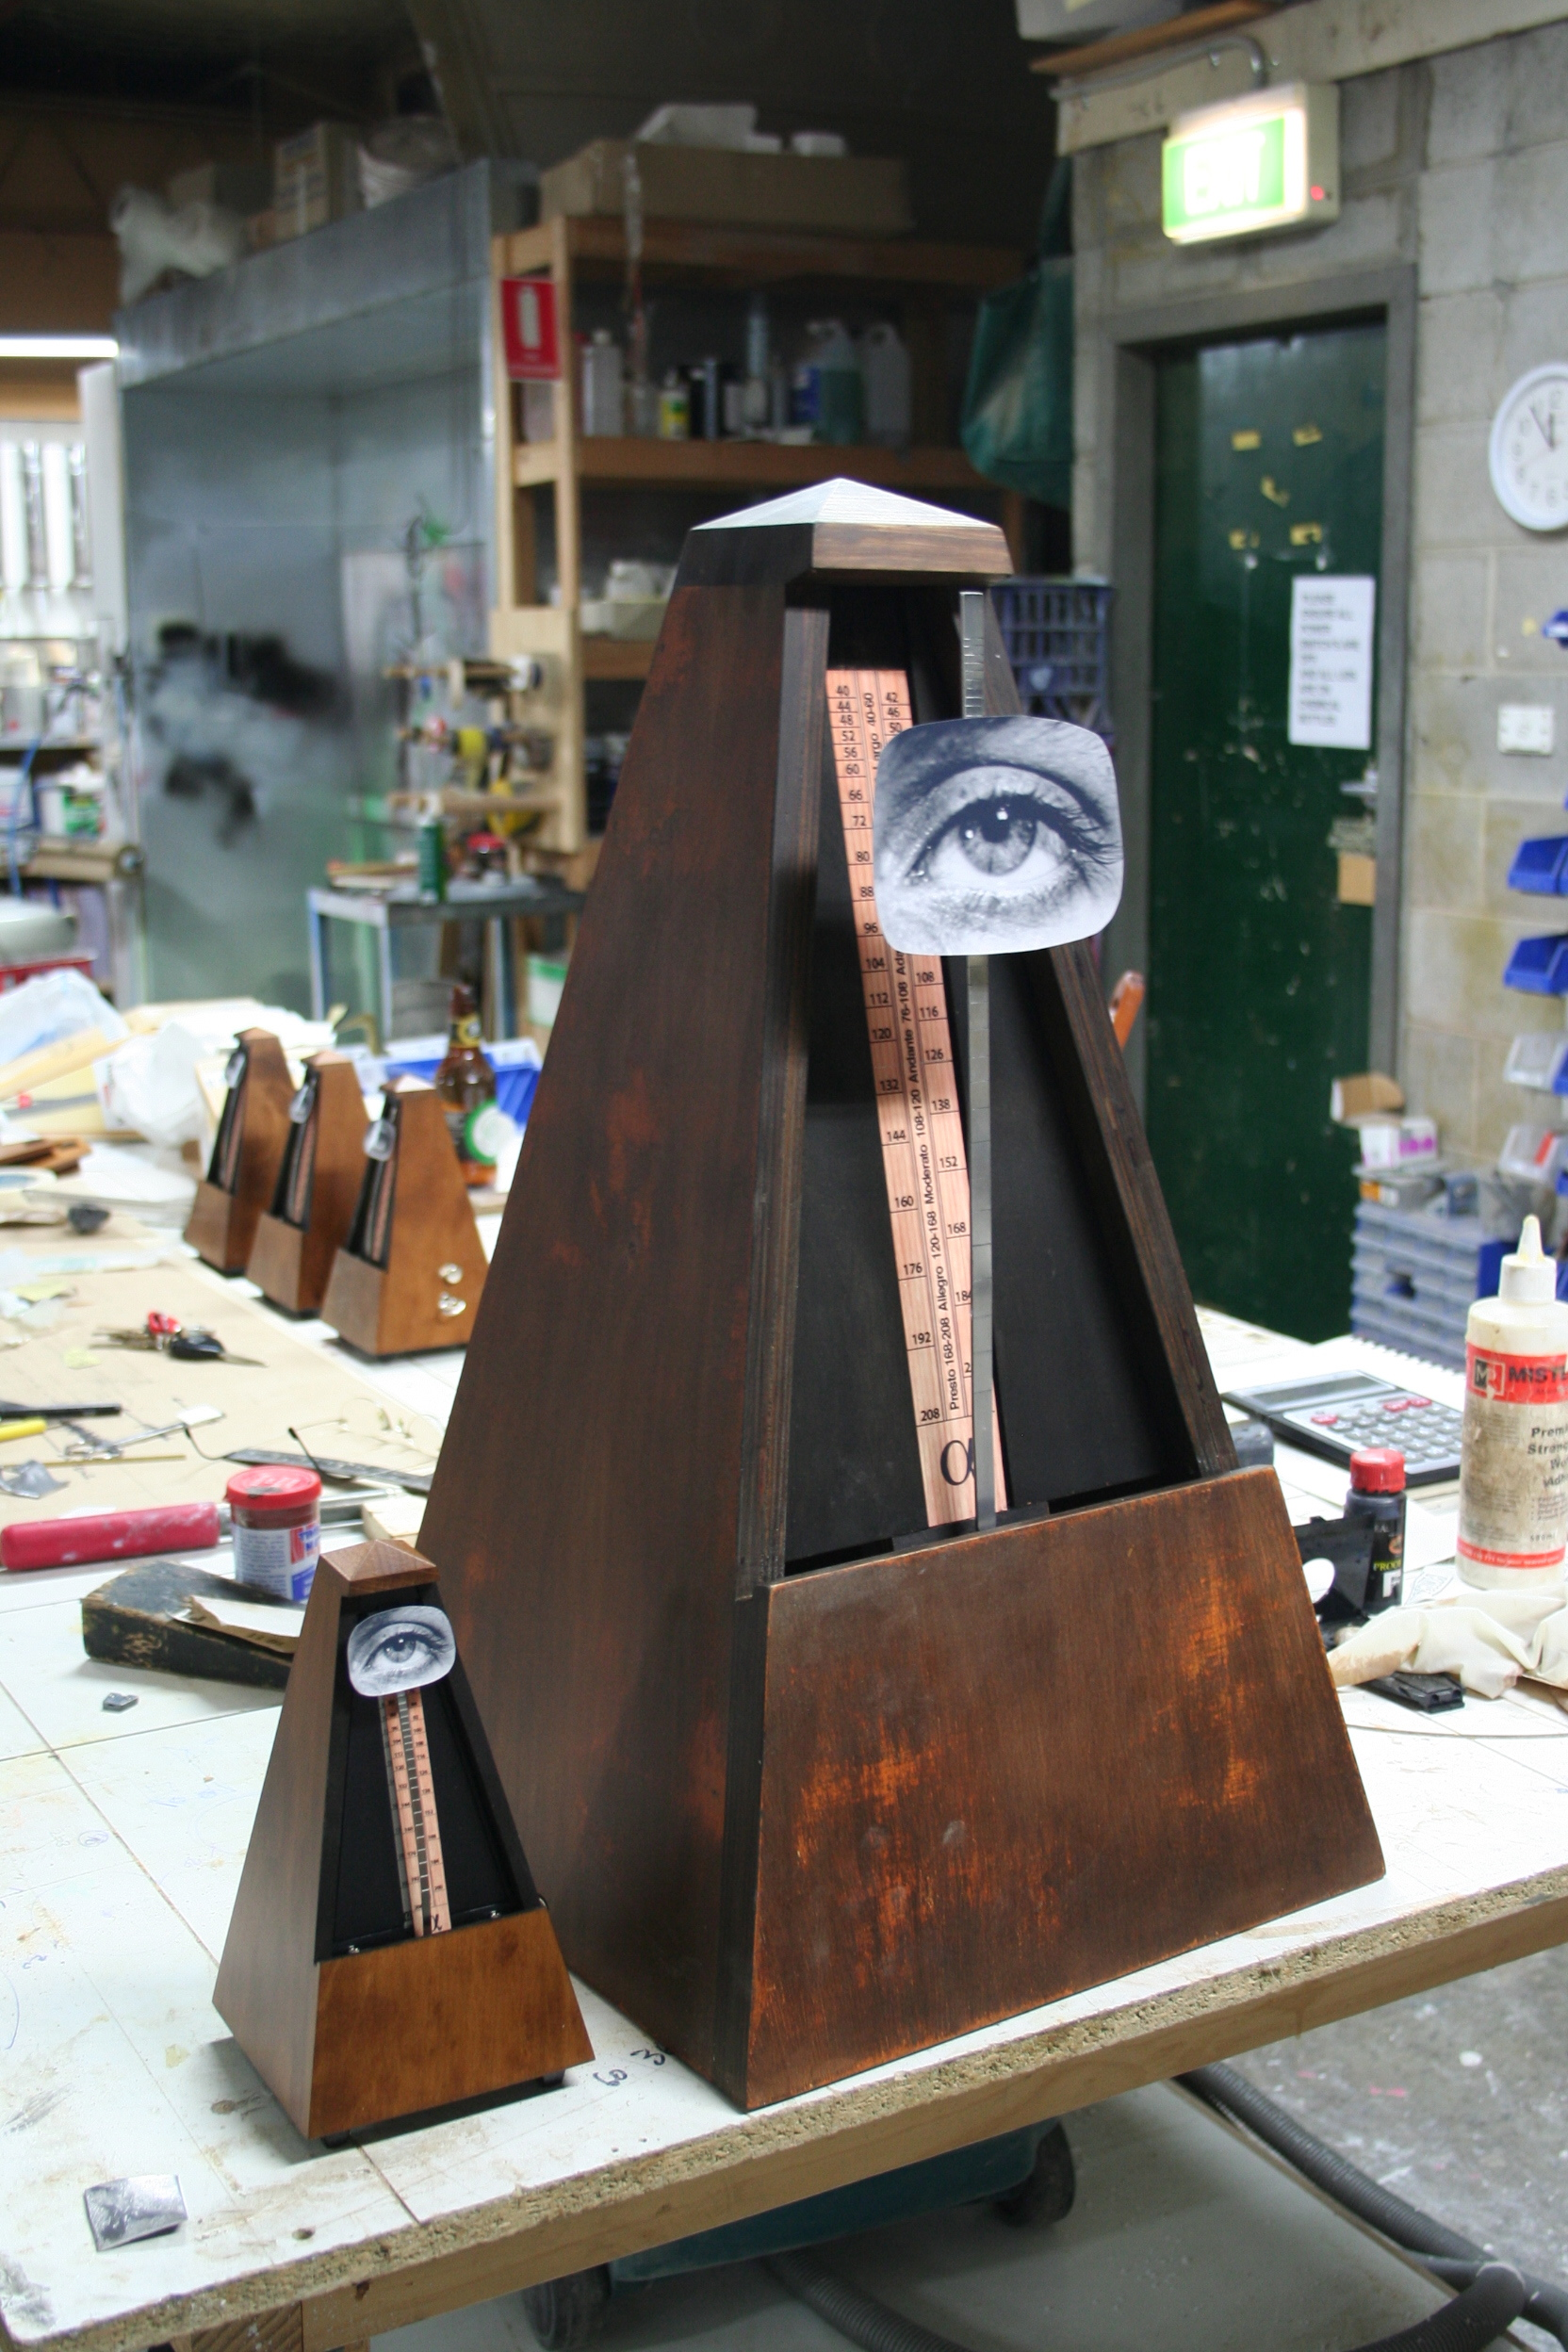 original and oversized metronome prop constructed by Yippee Ki-Yay